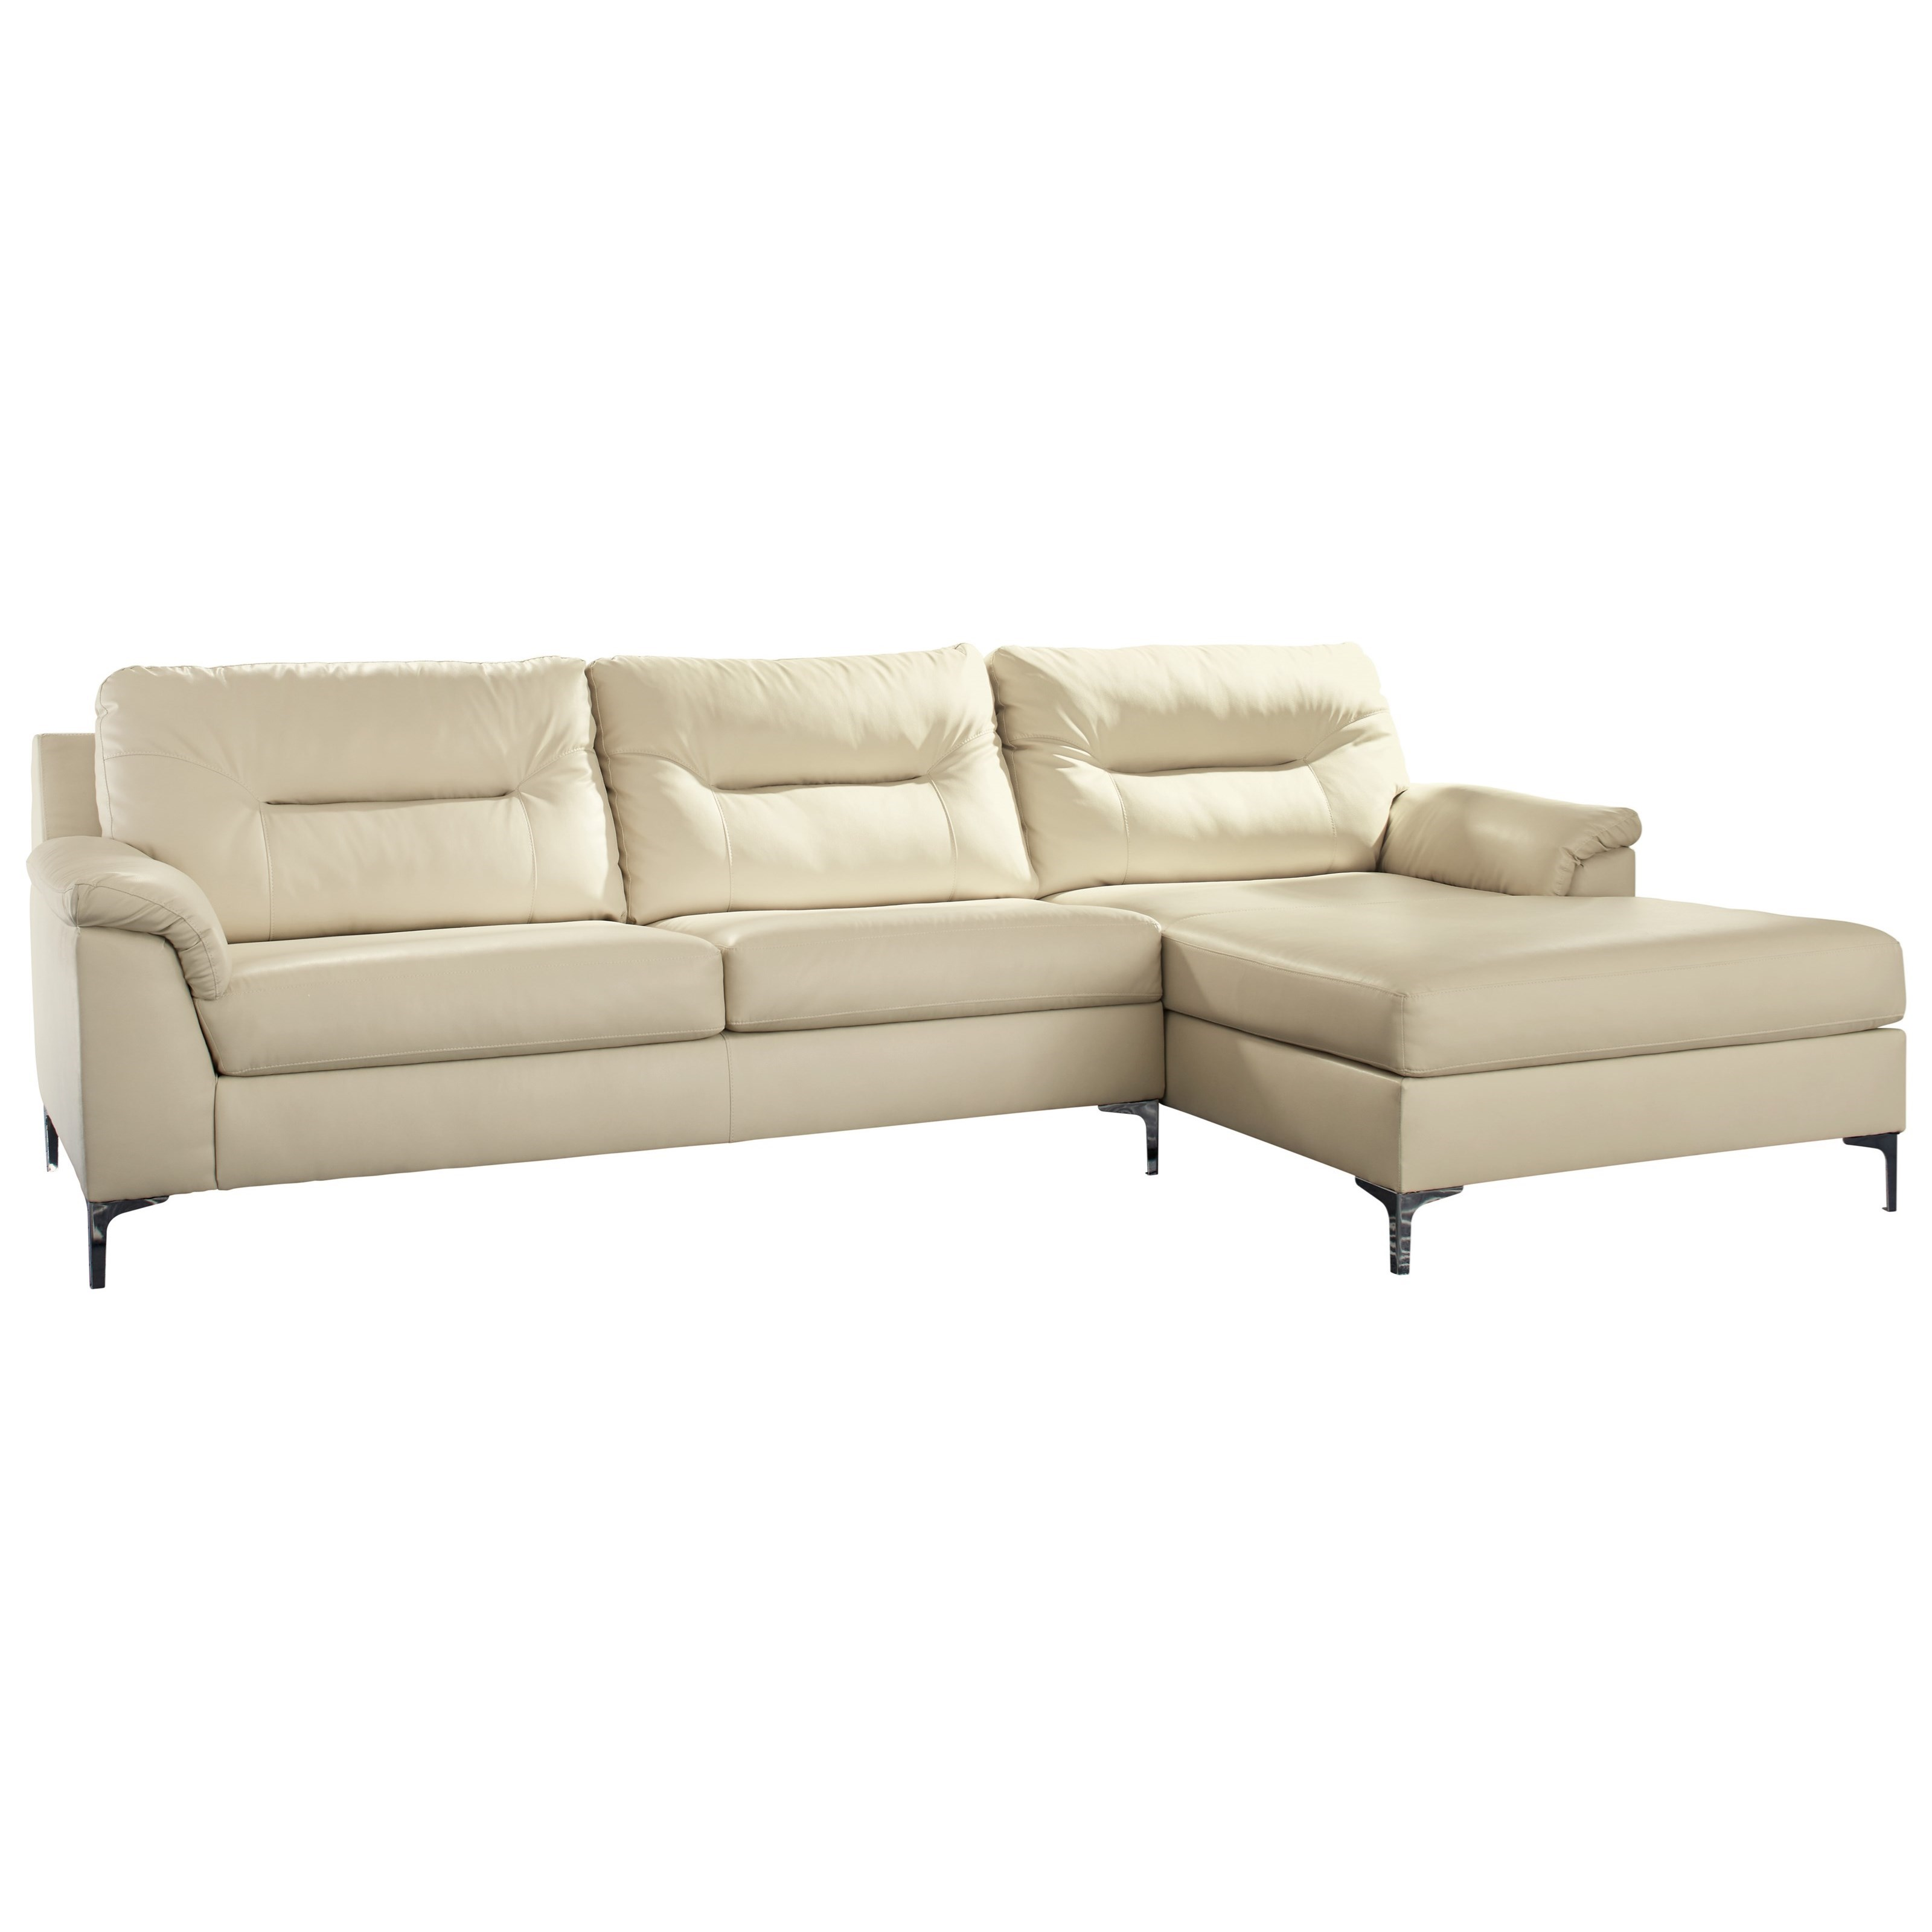 search living dual seating gray sofas sofa value chaise colette furniture couches room and v sectional city